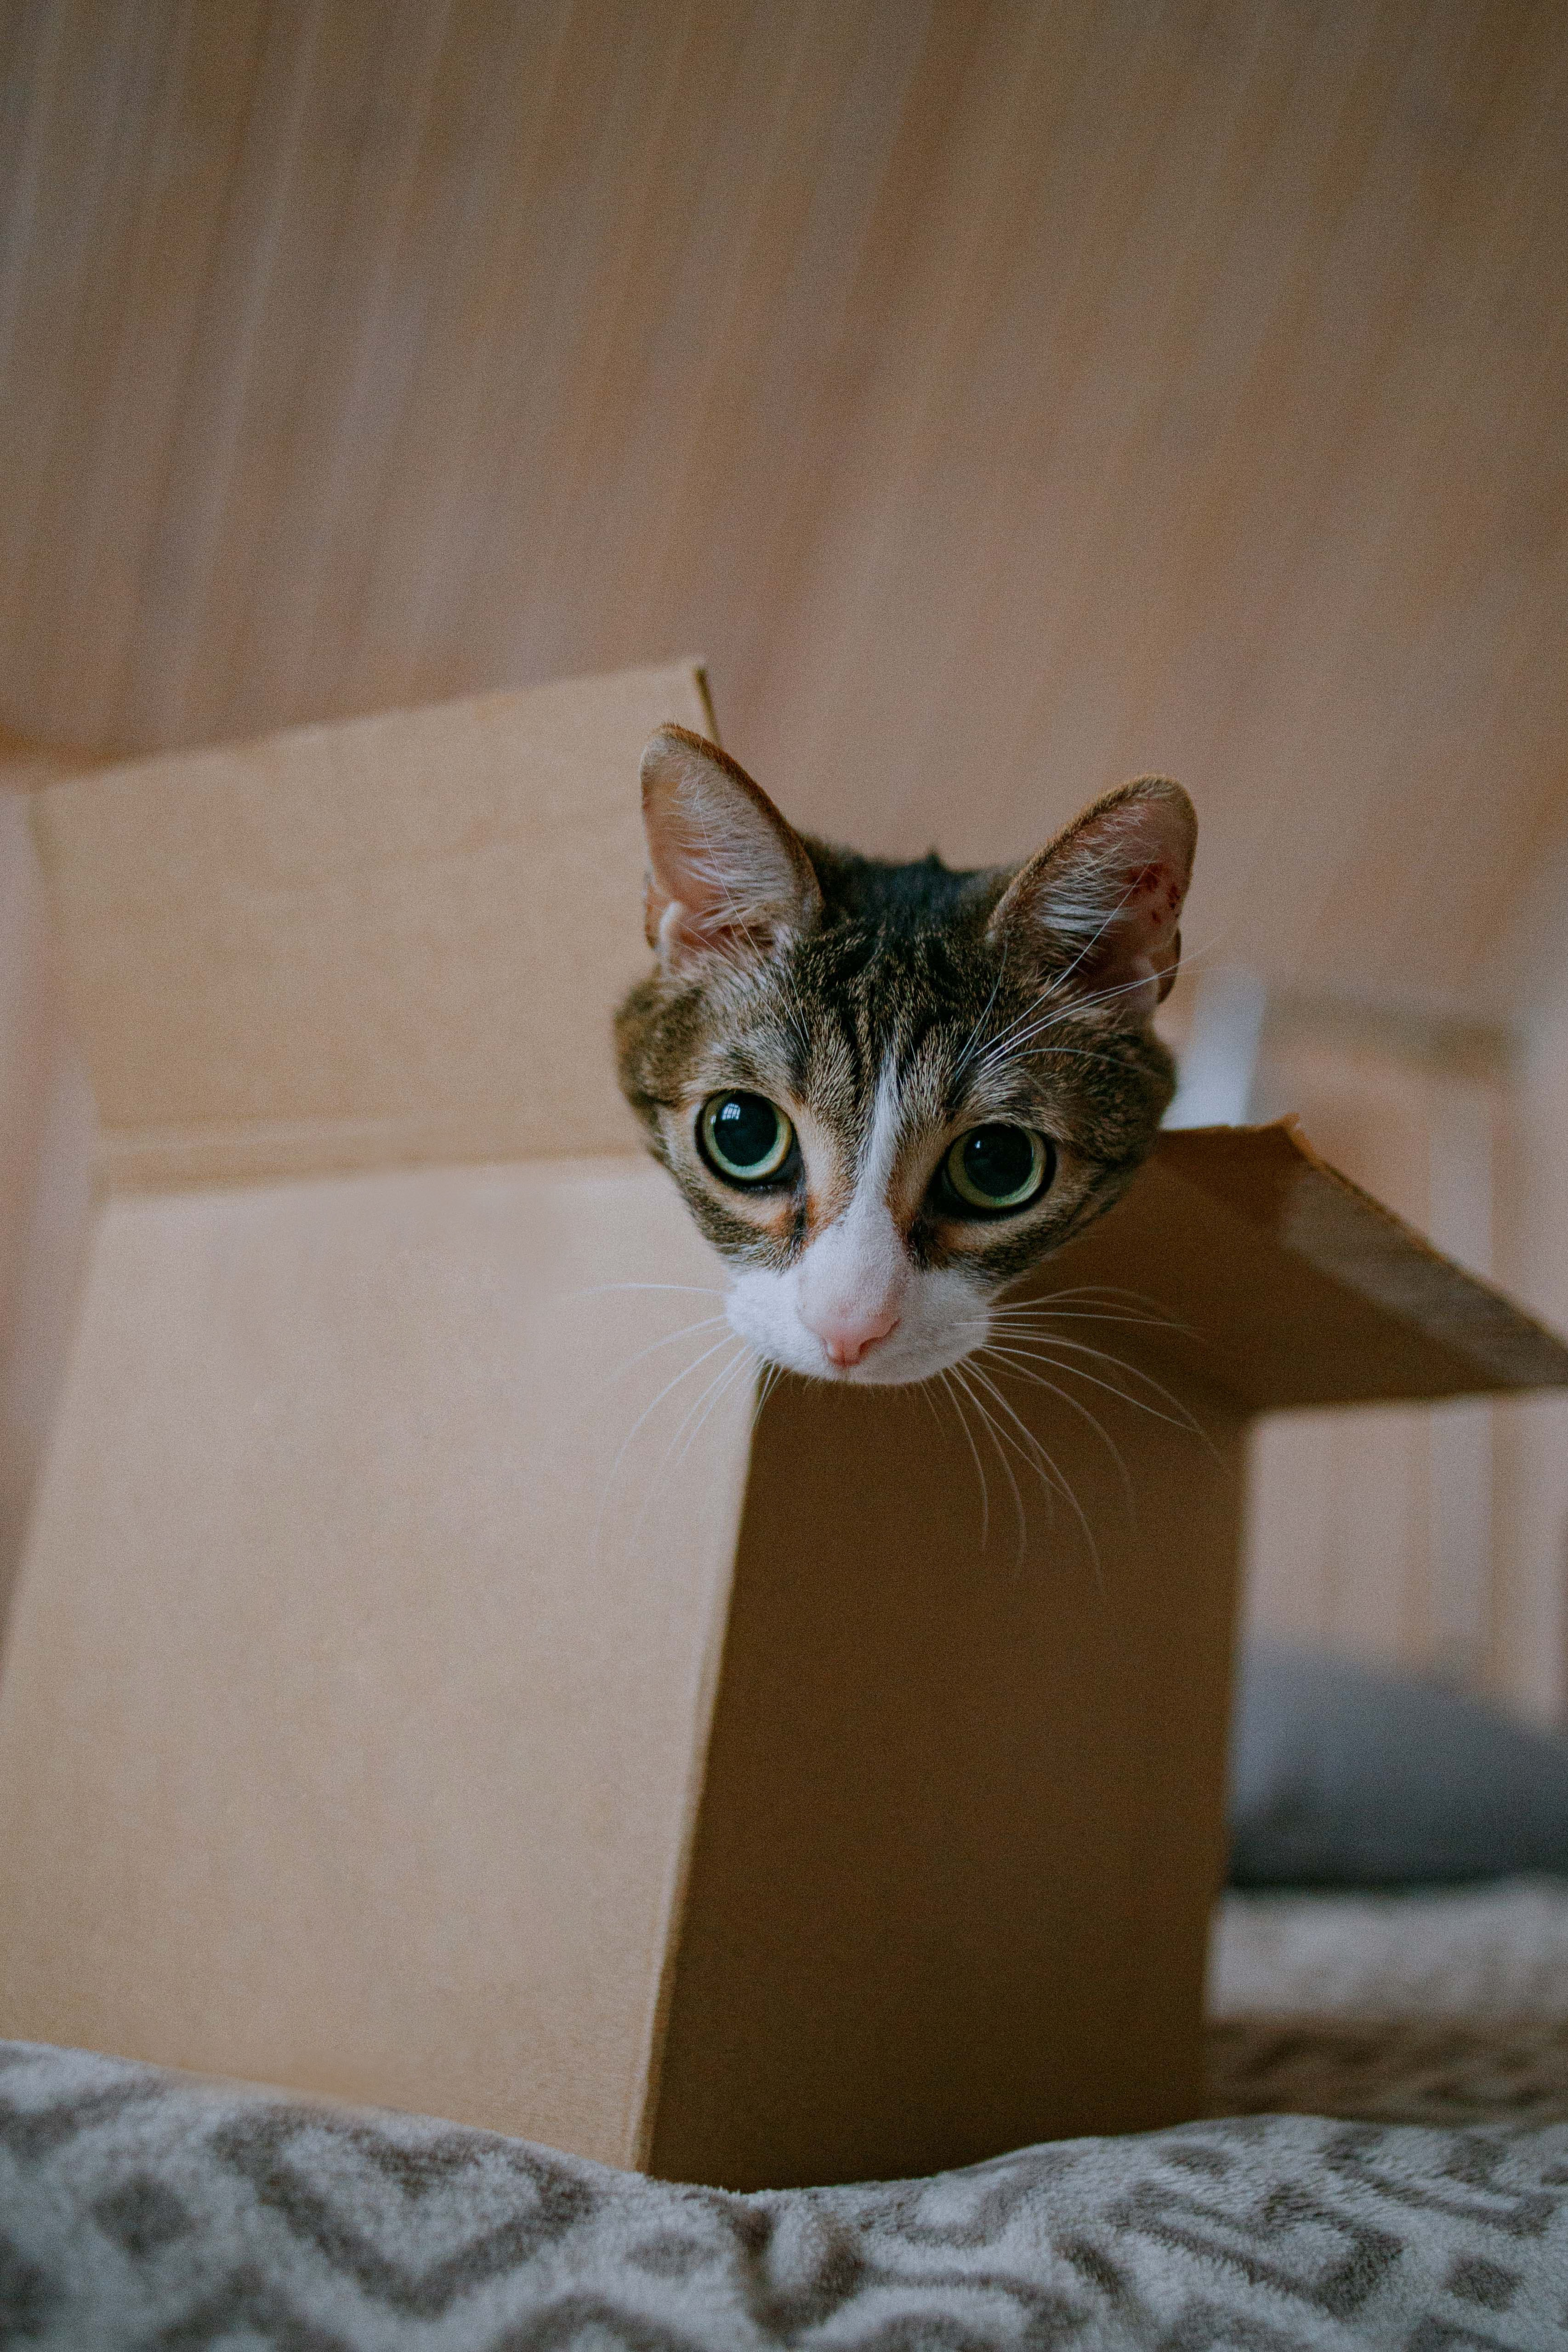 149737 download wallpaper Animals, Cat, Nice, Sweetheart, Funny, Box screensavers and pictures for free